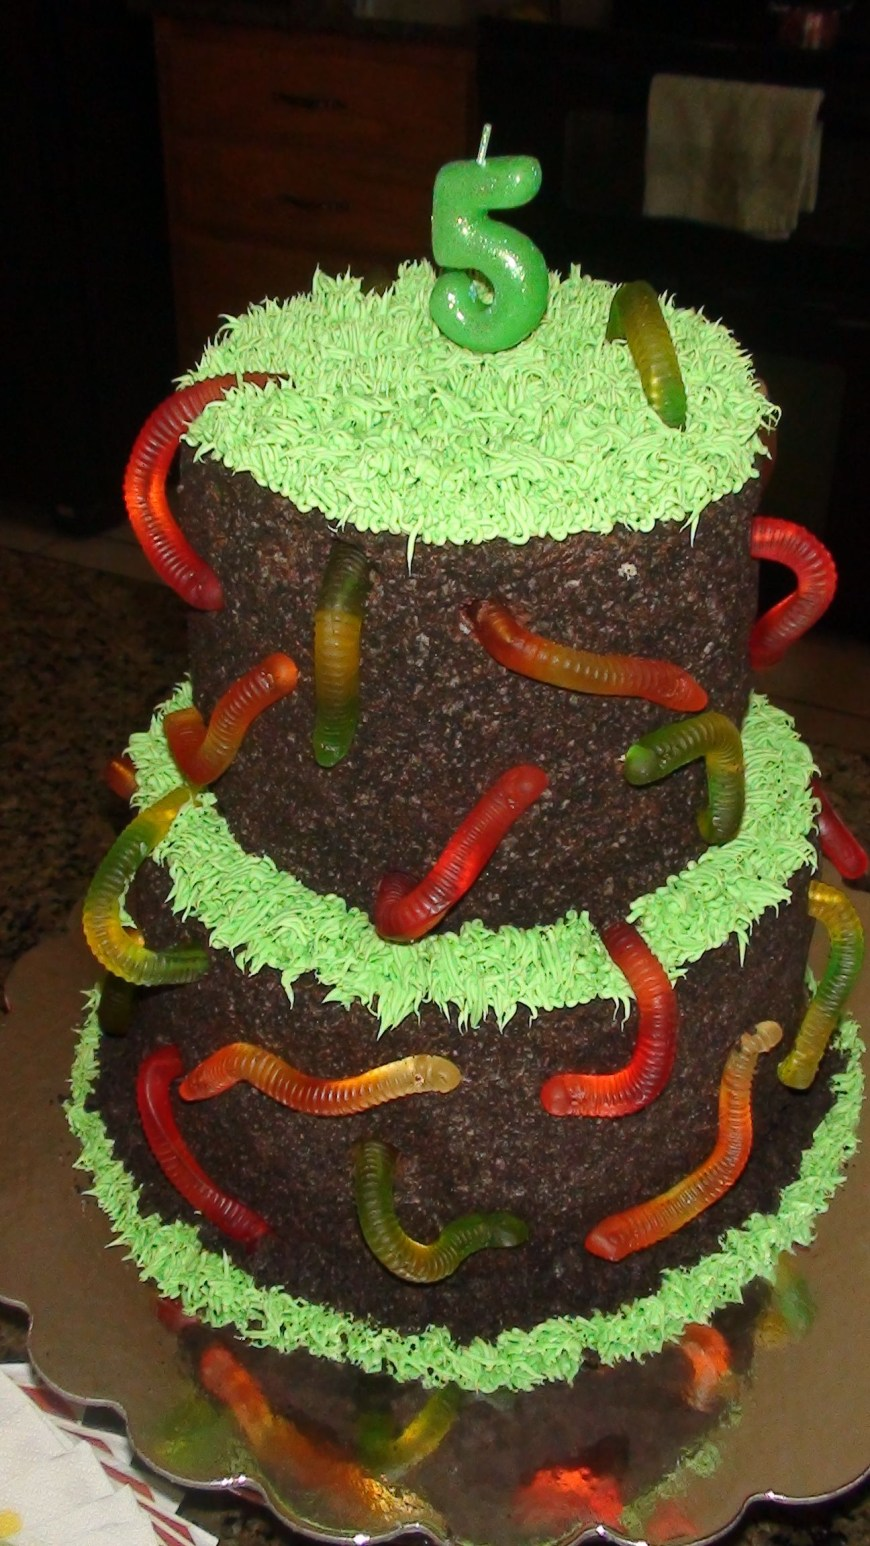 Types Of Birthday Cakes Dirt And Worms Cake Steph Loves This Type Of Cake A New Ideas